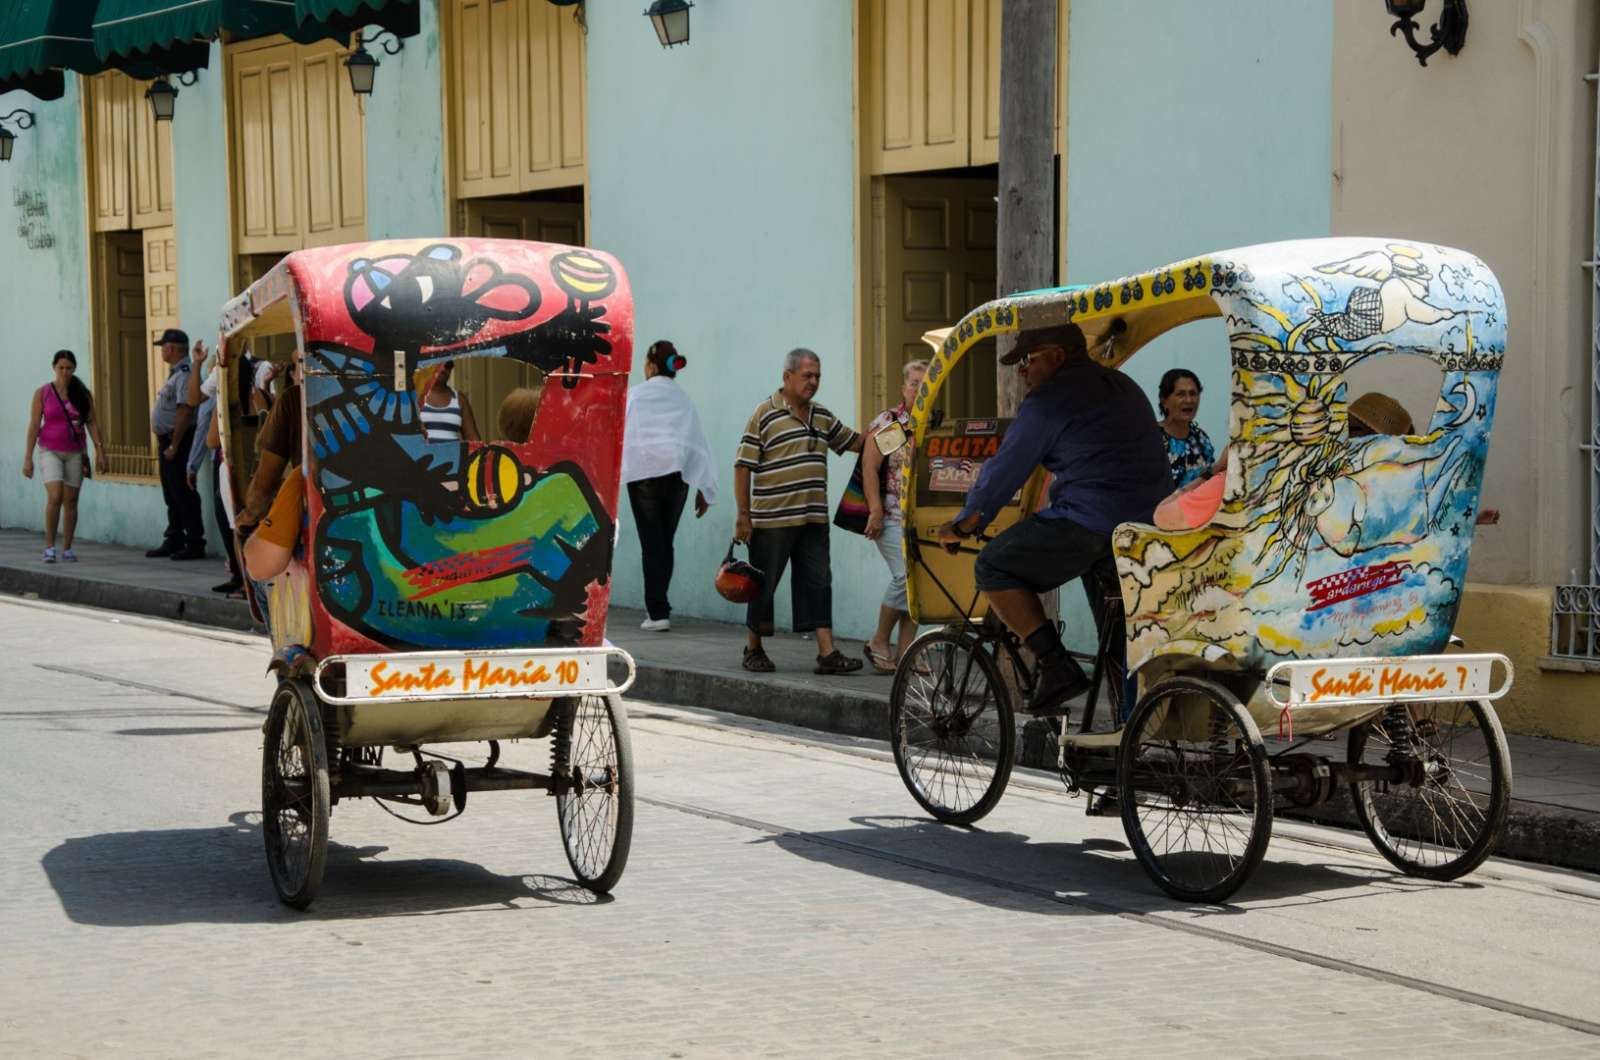 Rickshaws are popular with visitors to Camaguey in Cuba